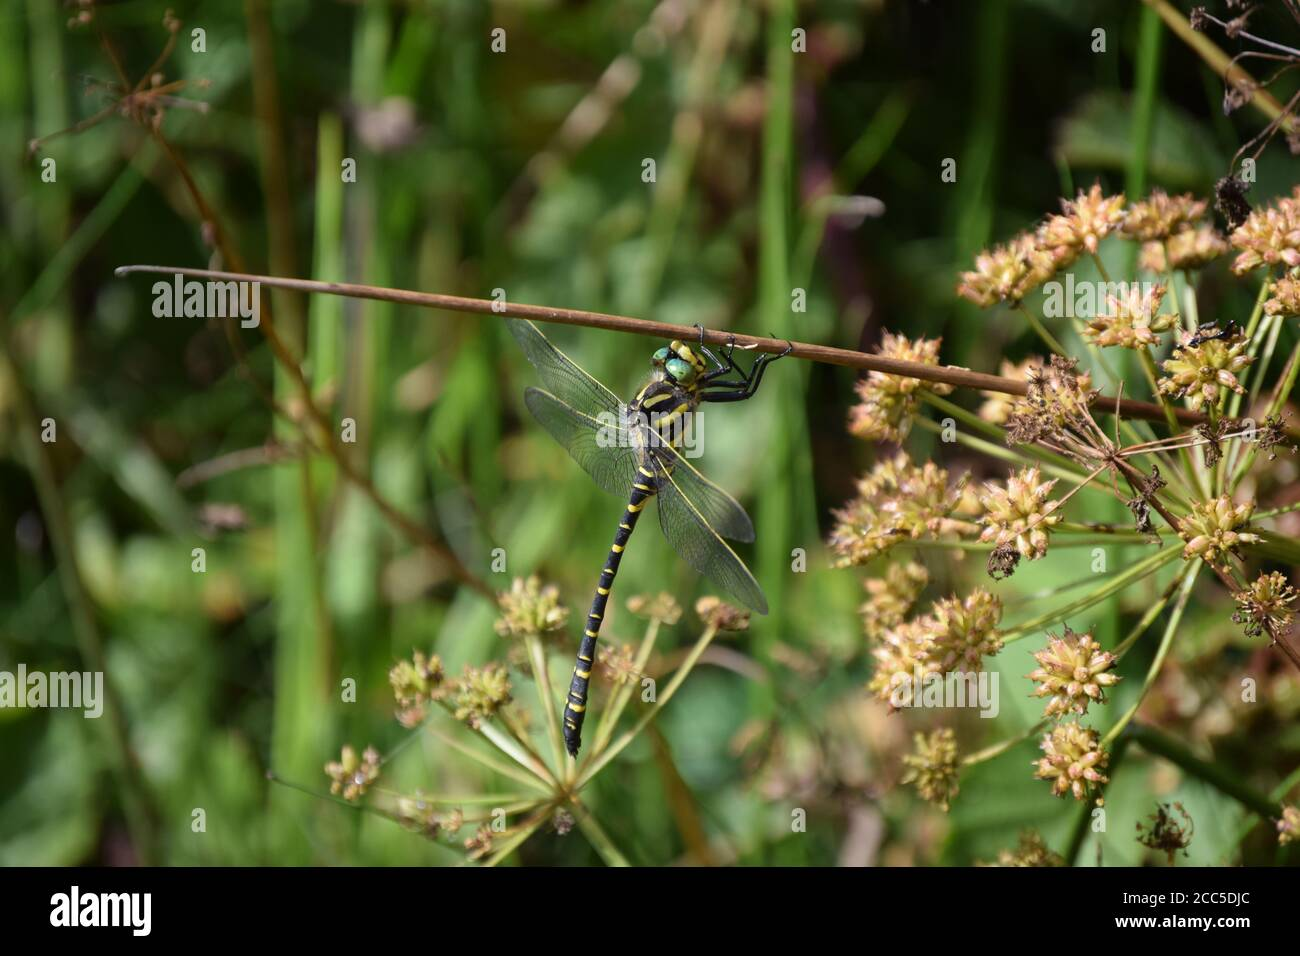 Golden-ringed Dragonfly hanging from stem Stock Photo